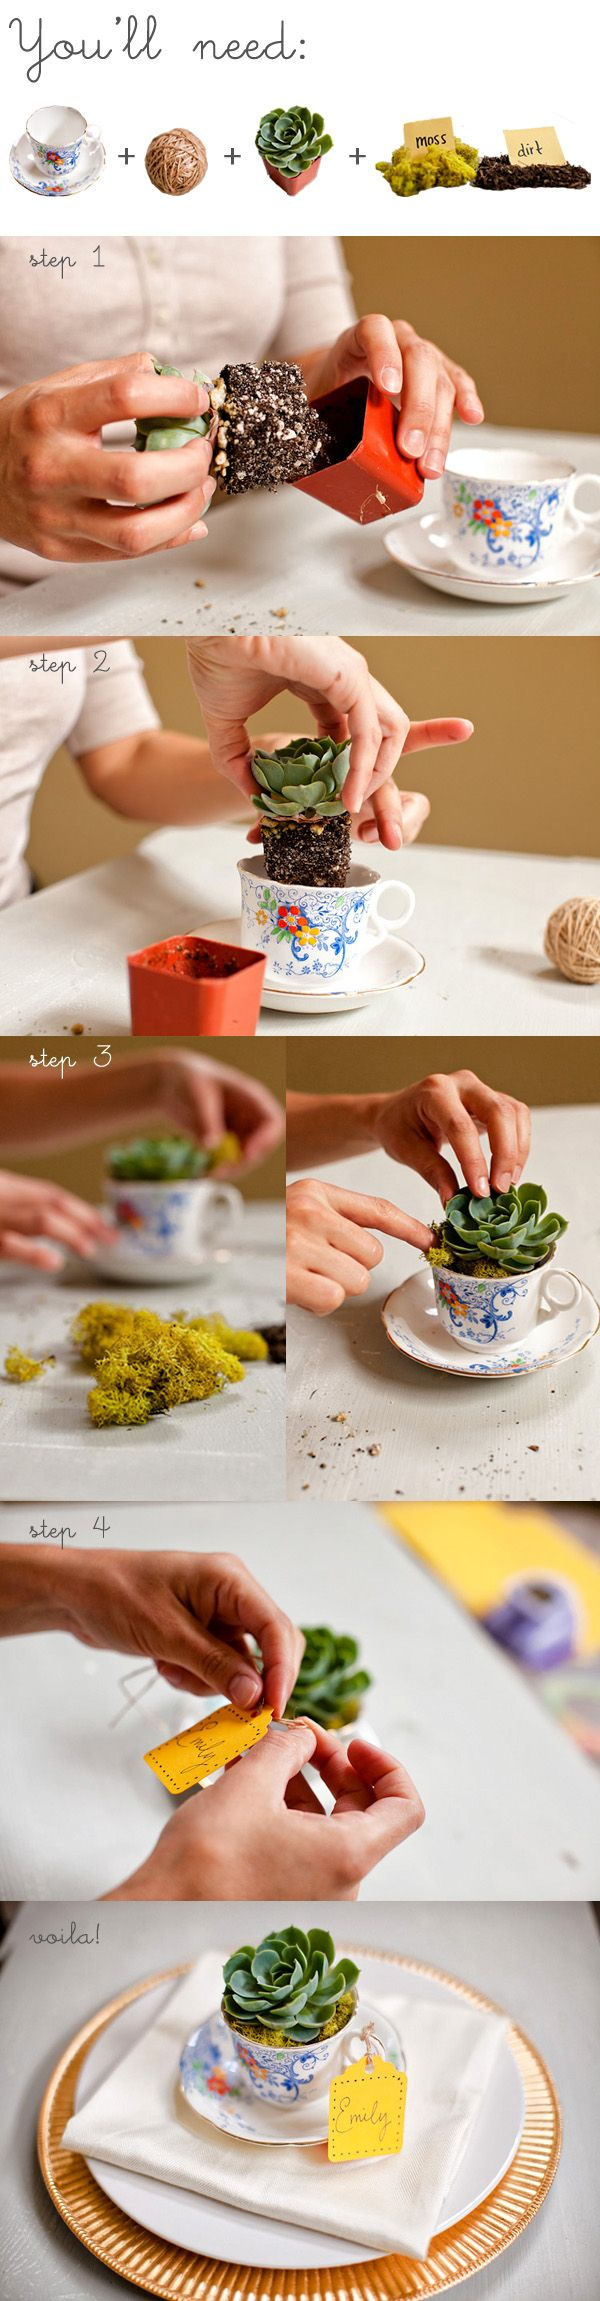 DIY: plante grasse + tasse + mousse / tea cup flower pot